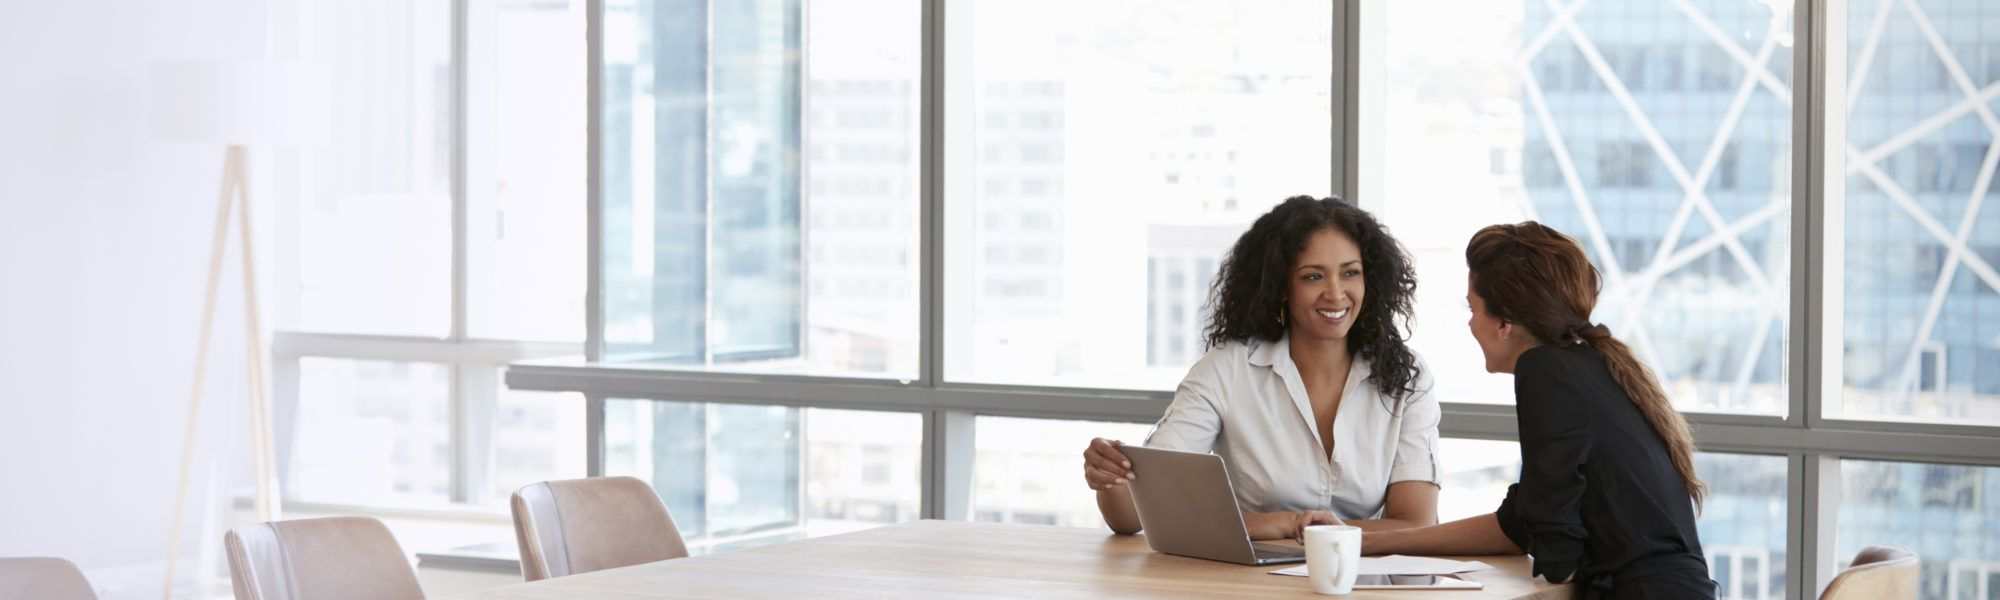 business women having a one on one in conference room